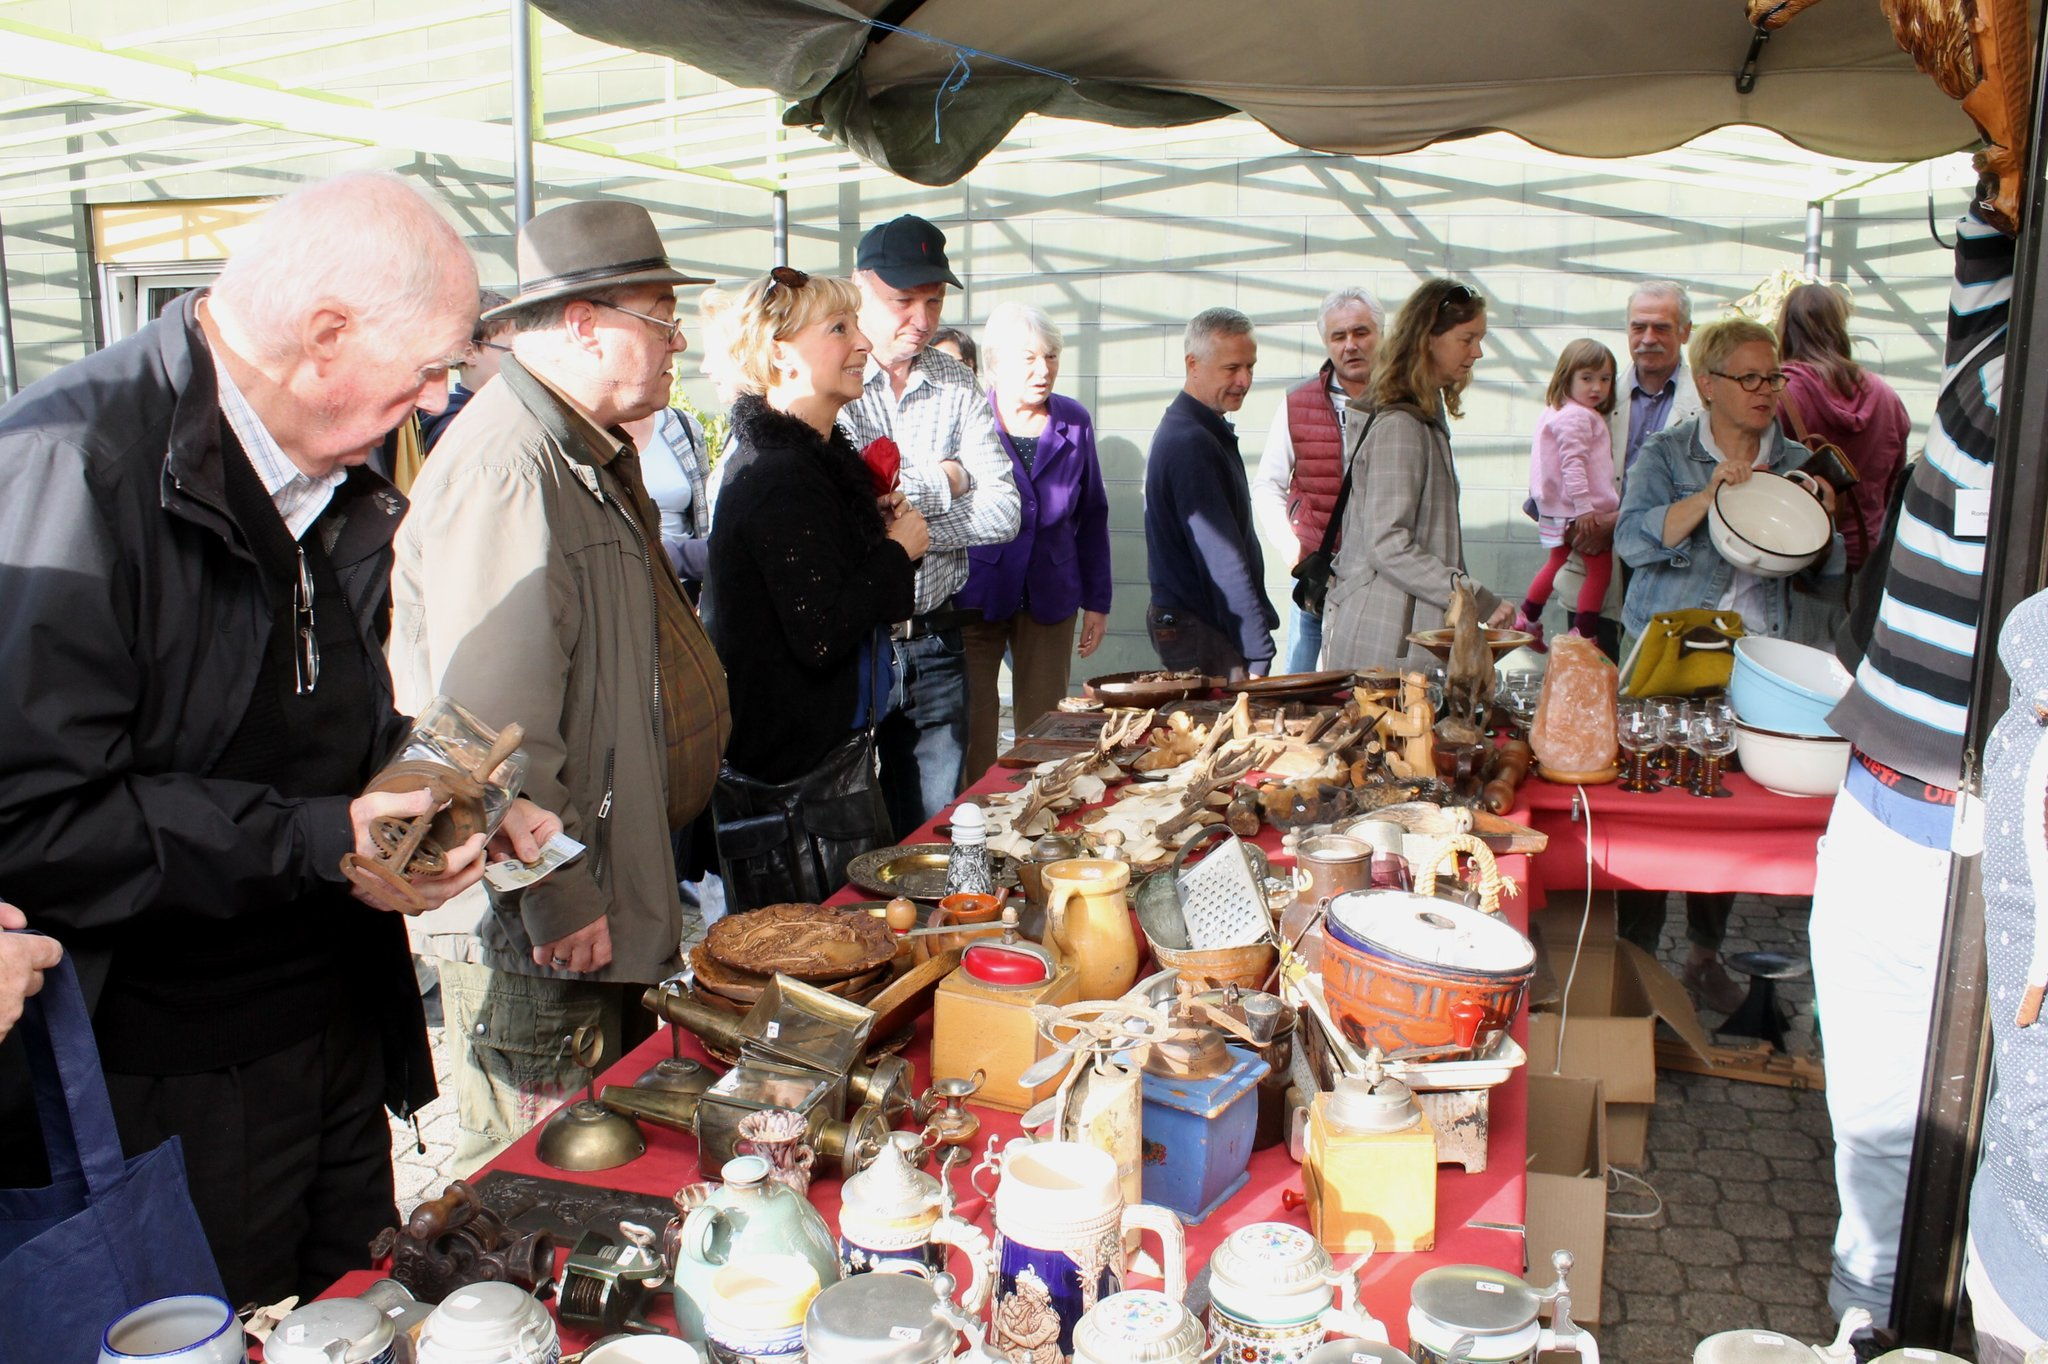 Antikmarkt Eschwege Flohmarkt Wagner De Antikmarkt Im Martinshaus Berghausen Am 30 September